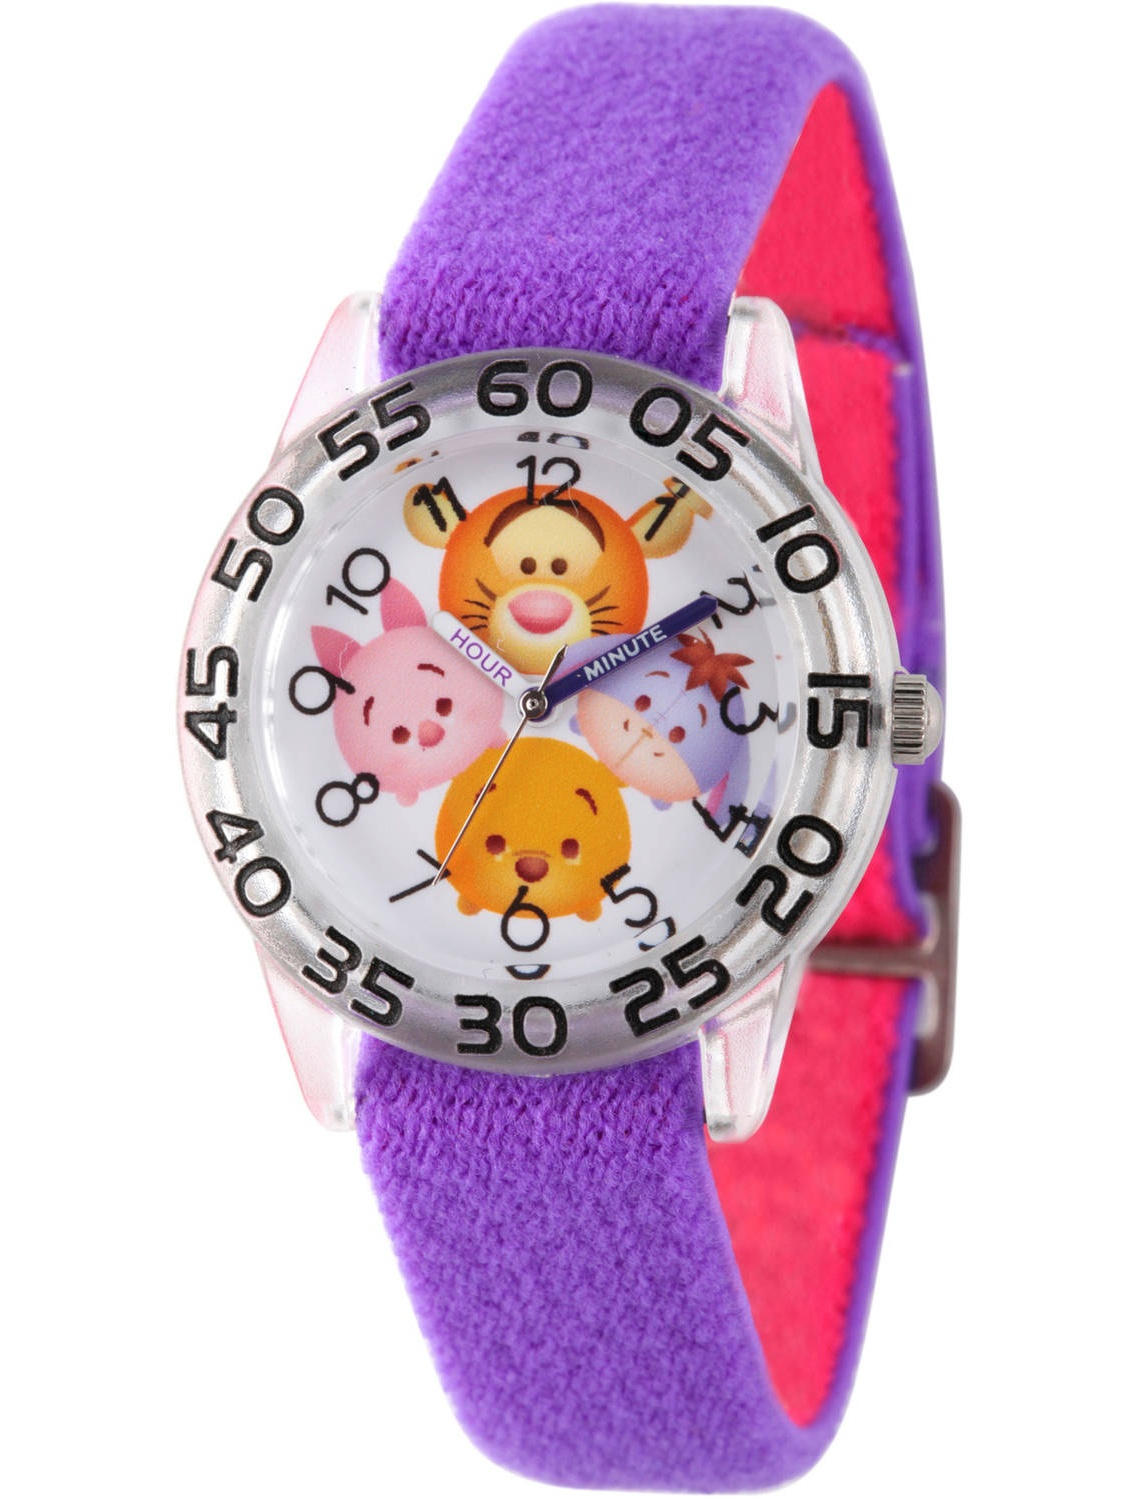 Disney Tsum Tsum, Tigger, Pooh, Goofy, Eeyore and Piglet Girls' Clear Plastic Time Teacher Watch, Reversible Purple and Blue Nylon Strap